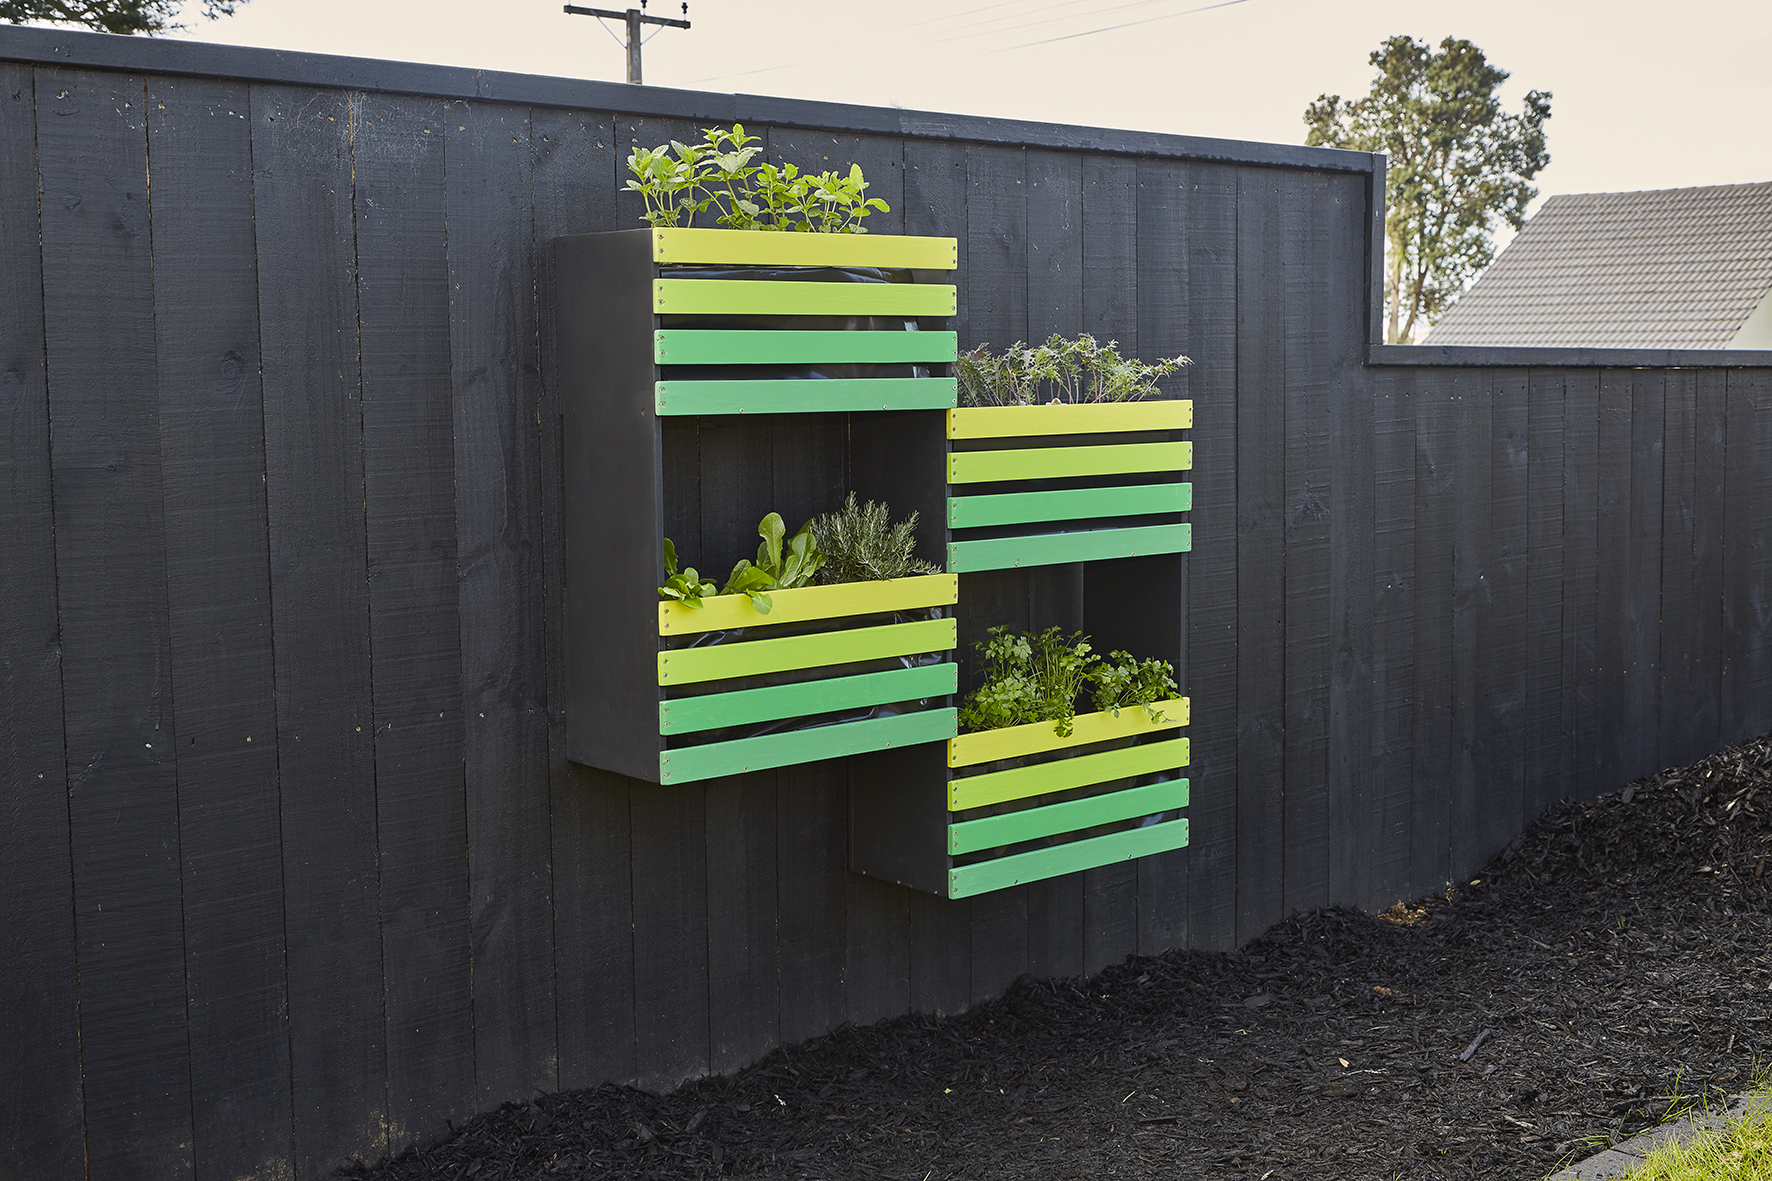 Resene All Black fence with a colourful and handy vertical garden in Resene ASAP, Resene Left...